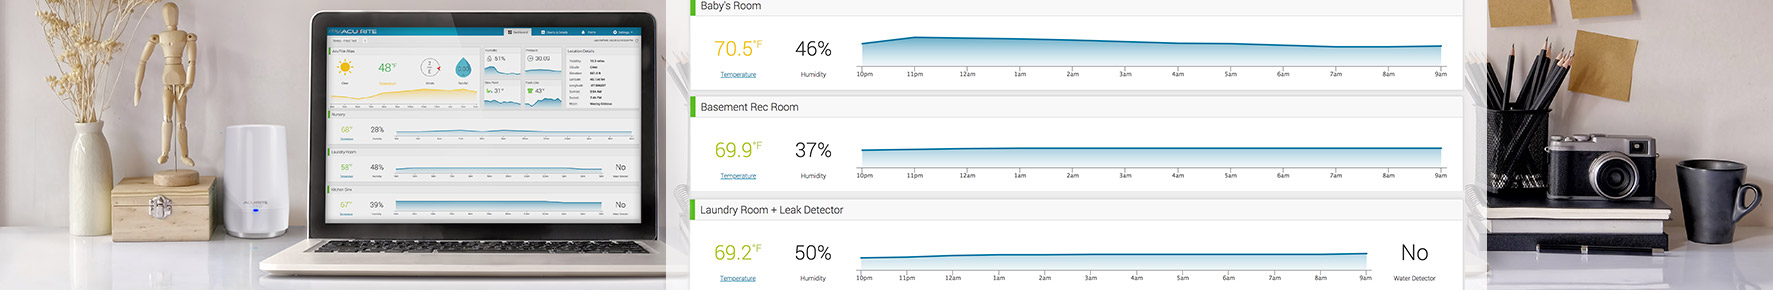 Internet Connected Home Monitoring